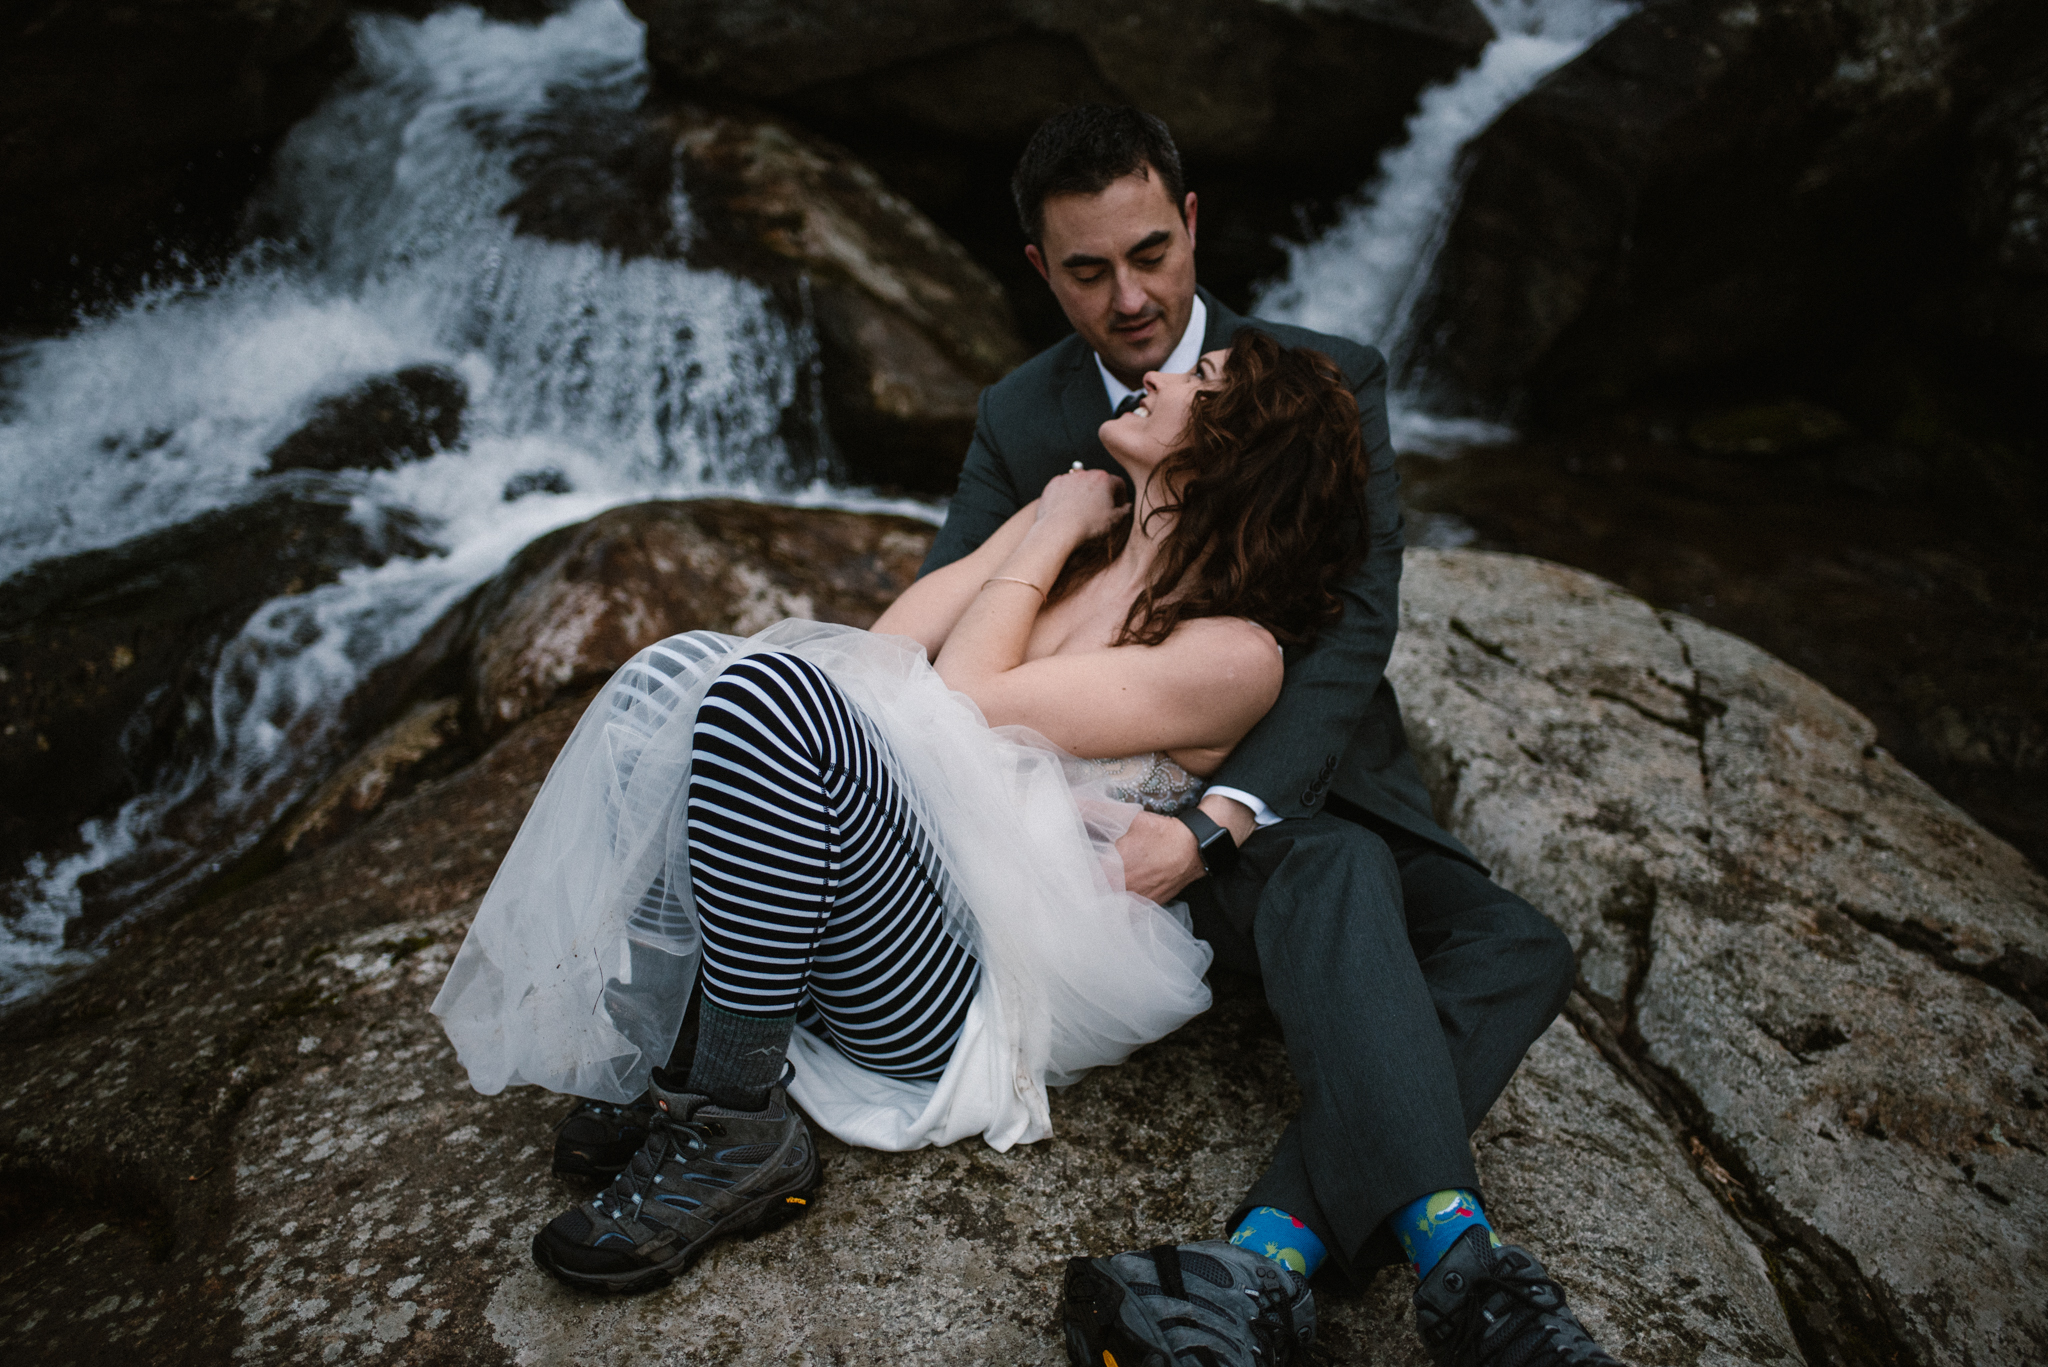 Stephanie and Steve - Shenandoah National Park Elopement - Sunrise Hiking Elopement - Adventurous Elopement - Virginia Elopement Photographer - Shenandoah national Park Wedding Photographer - White Sails Creative_26.jpg